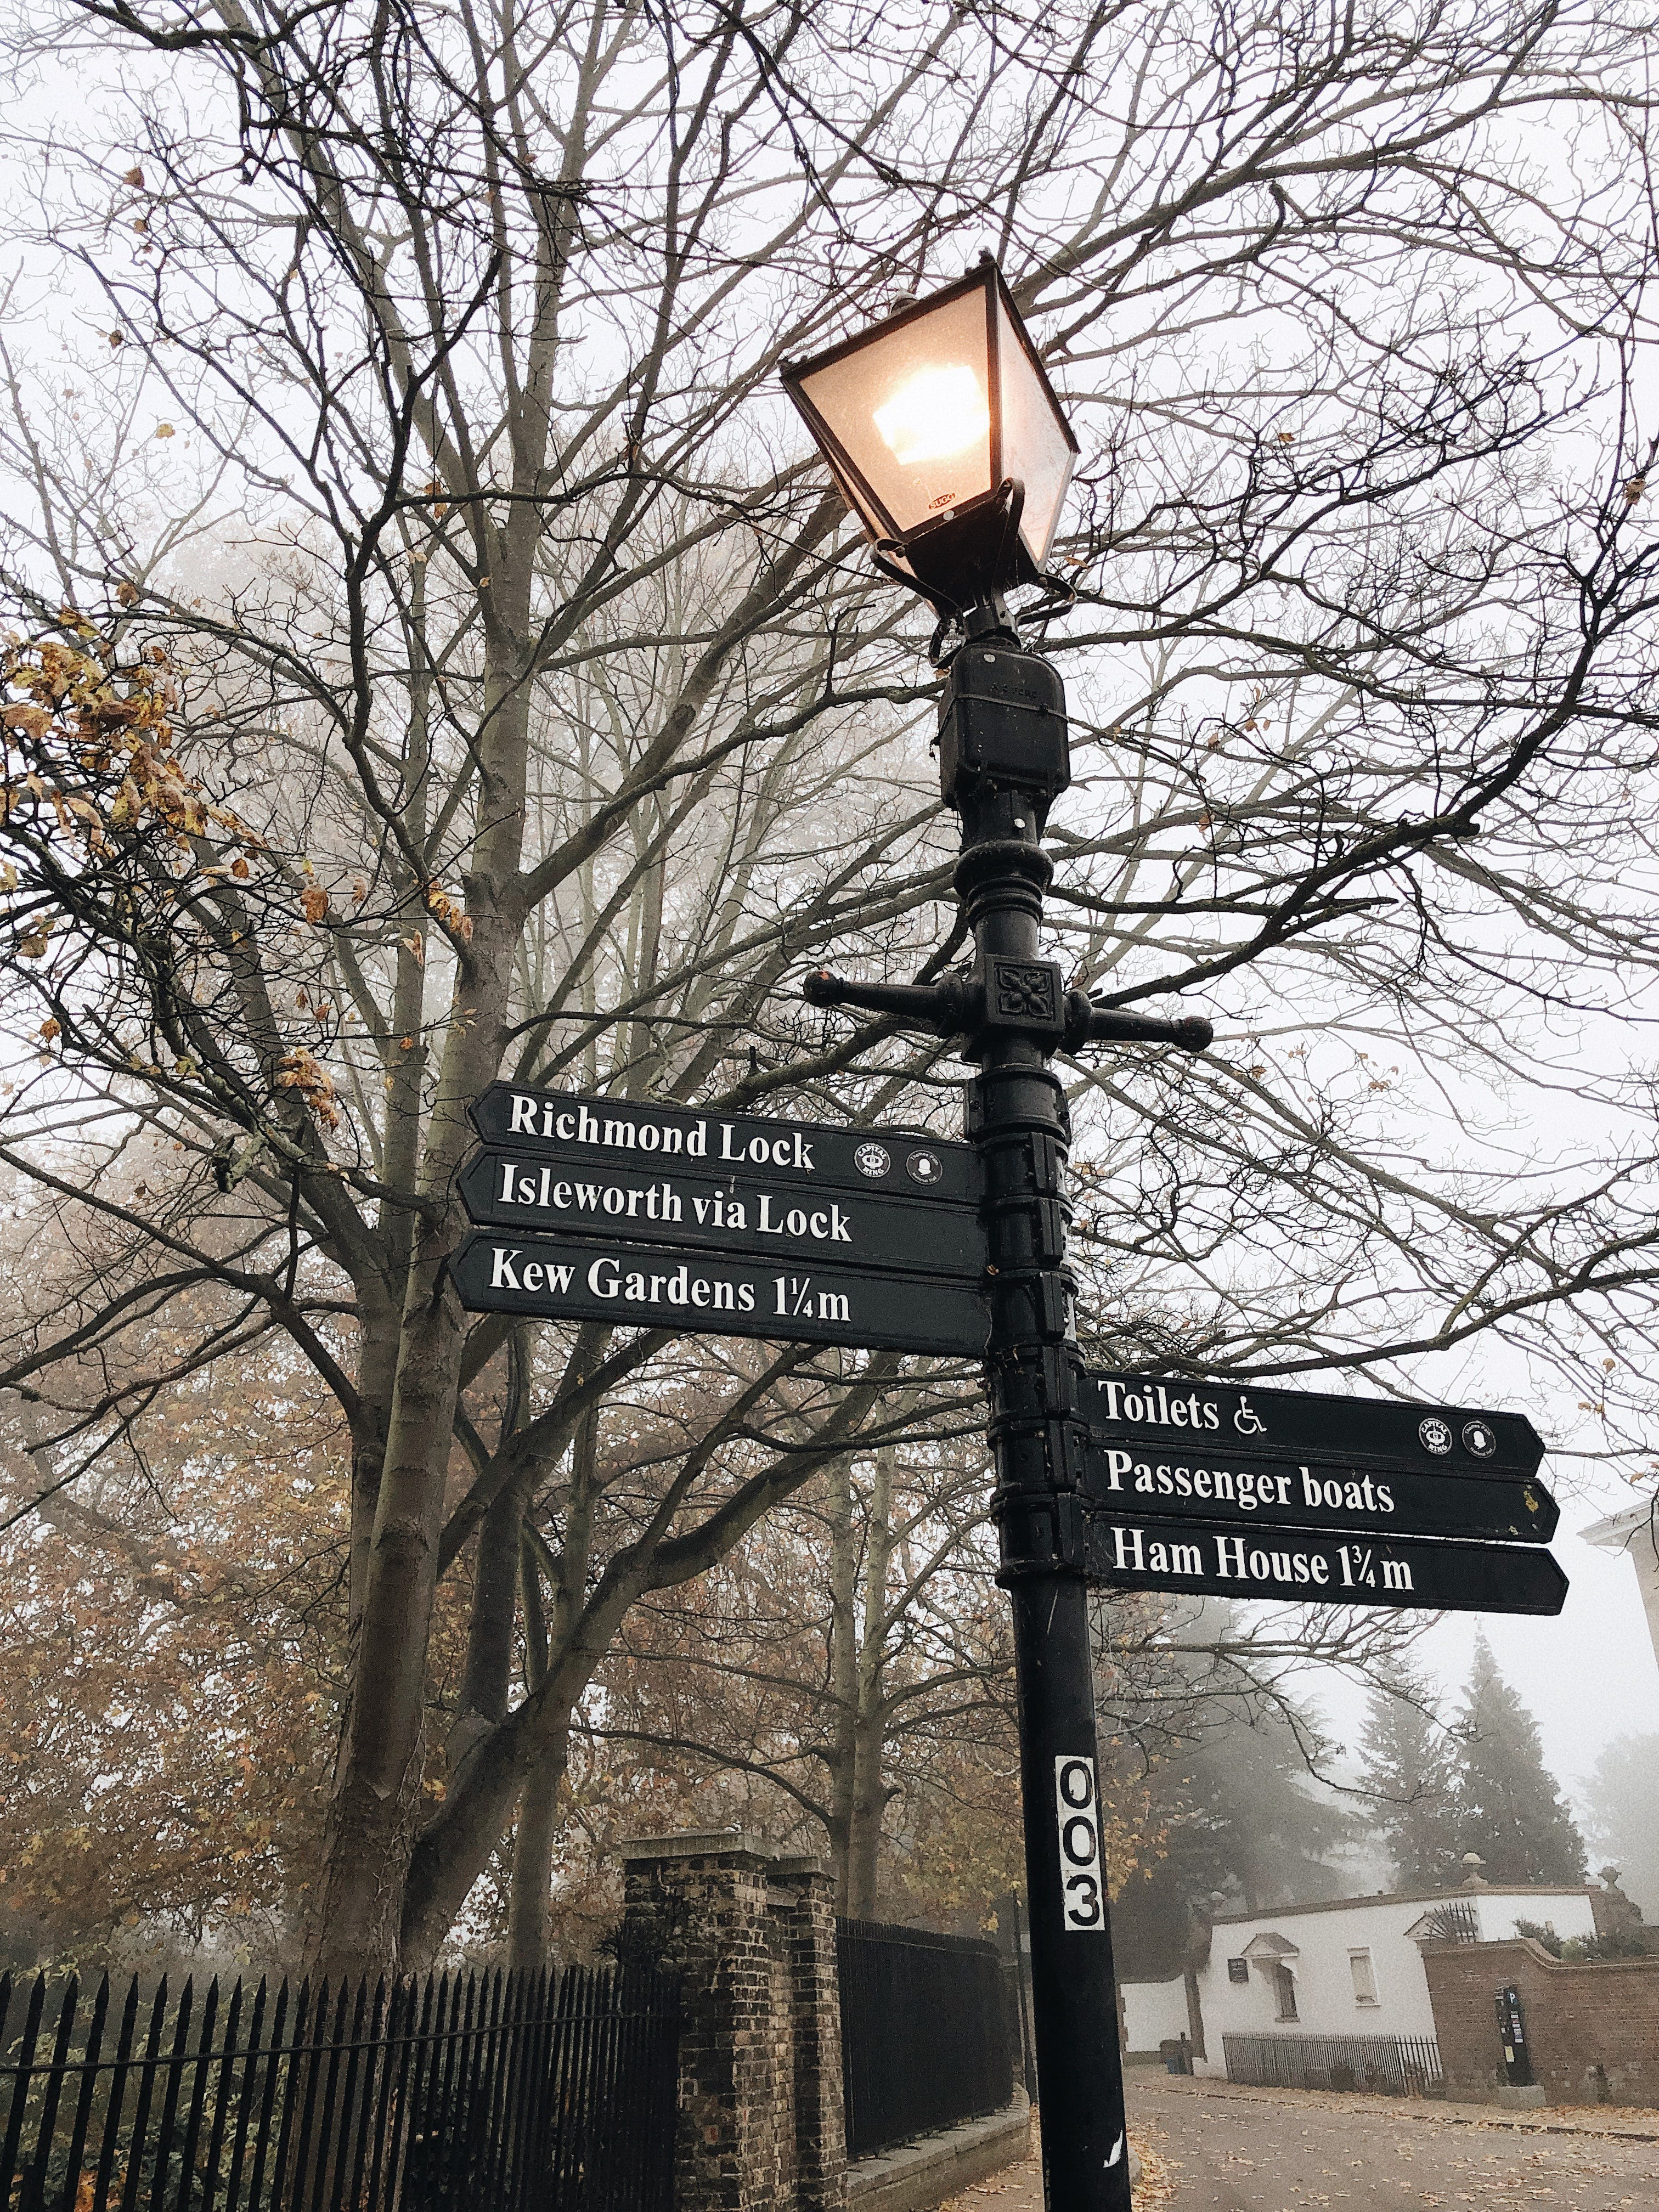 Lighted Black Cast Iron Post Lamp With Direction Signs